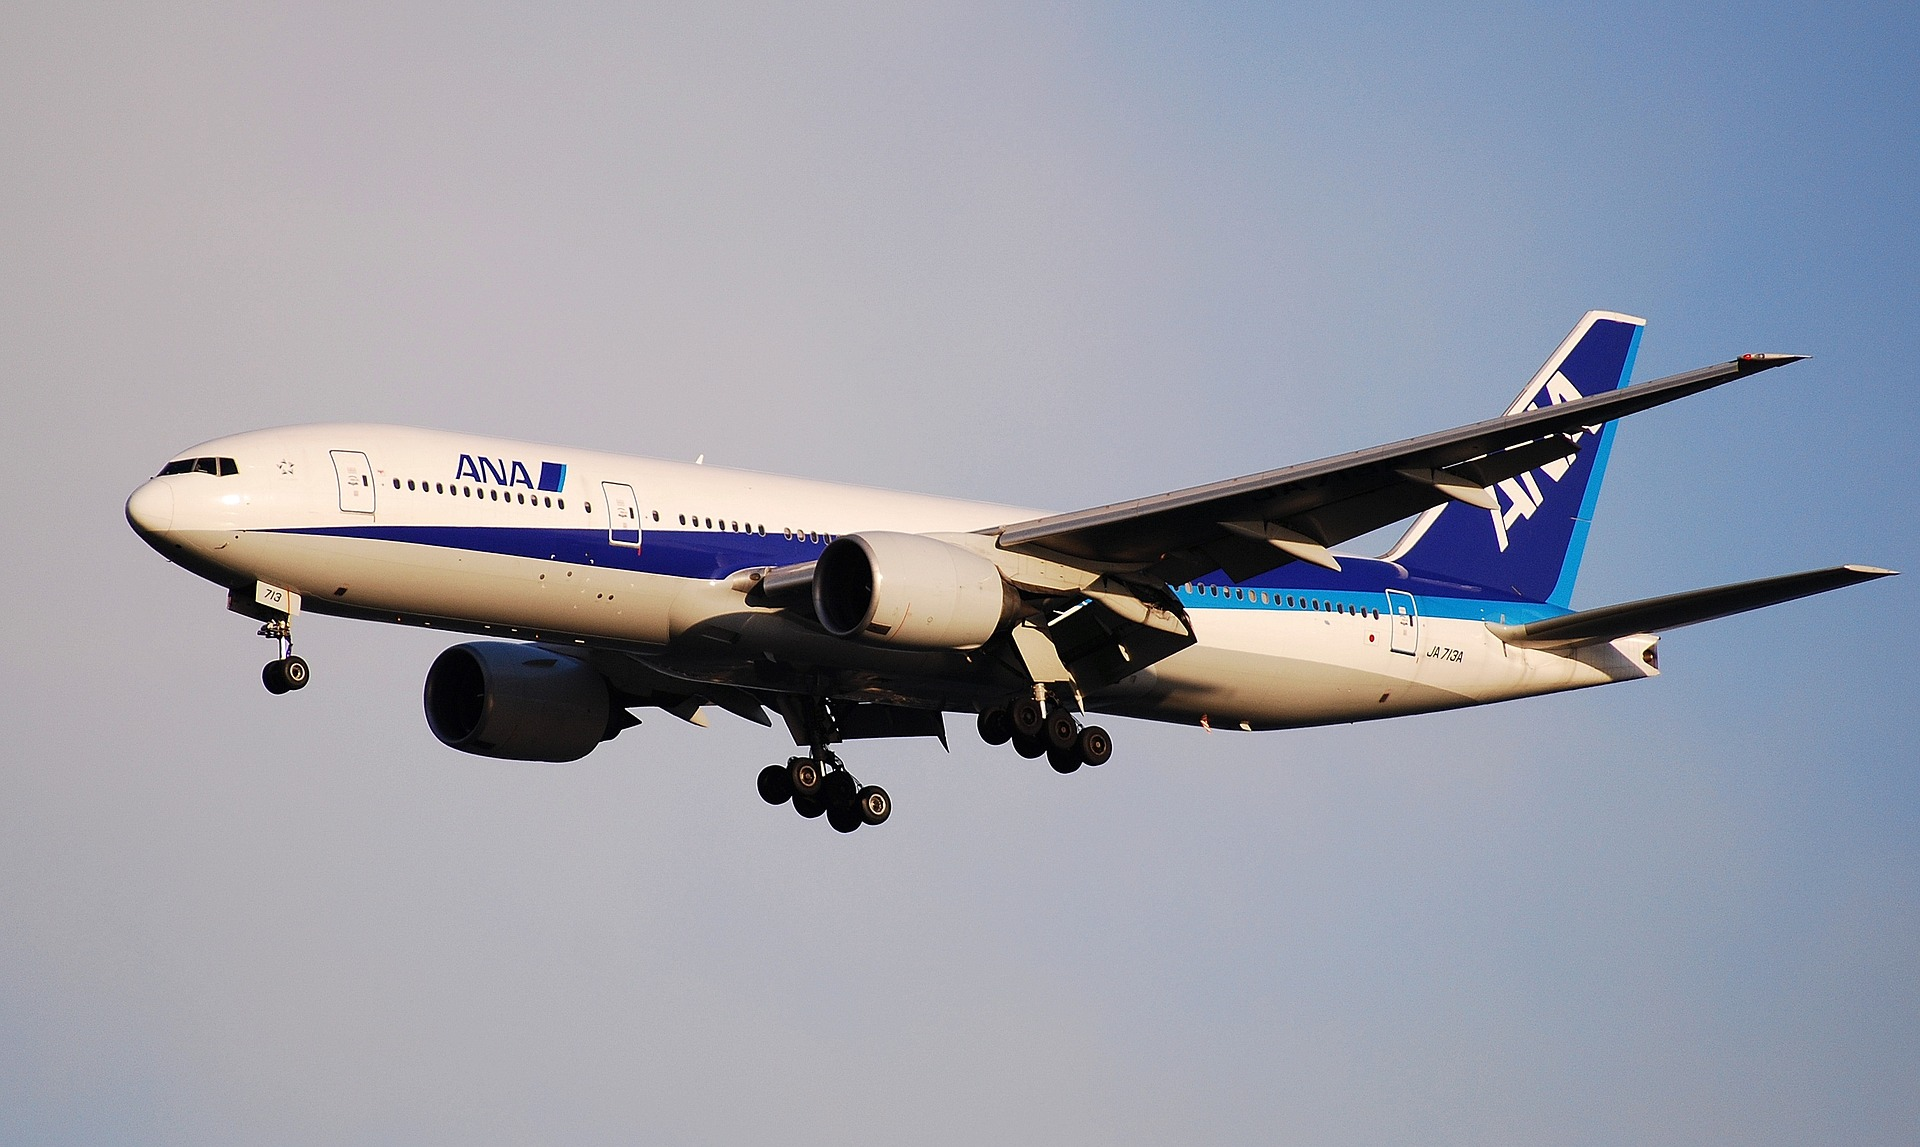 Booking ANA Around the World Award Tickets